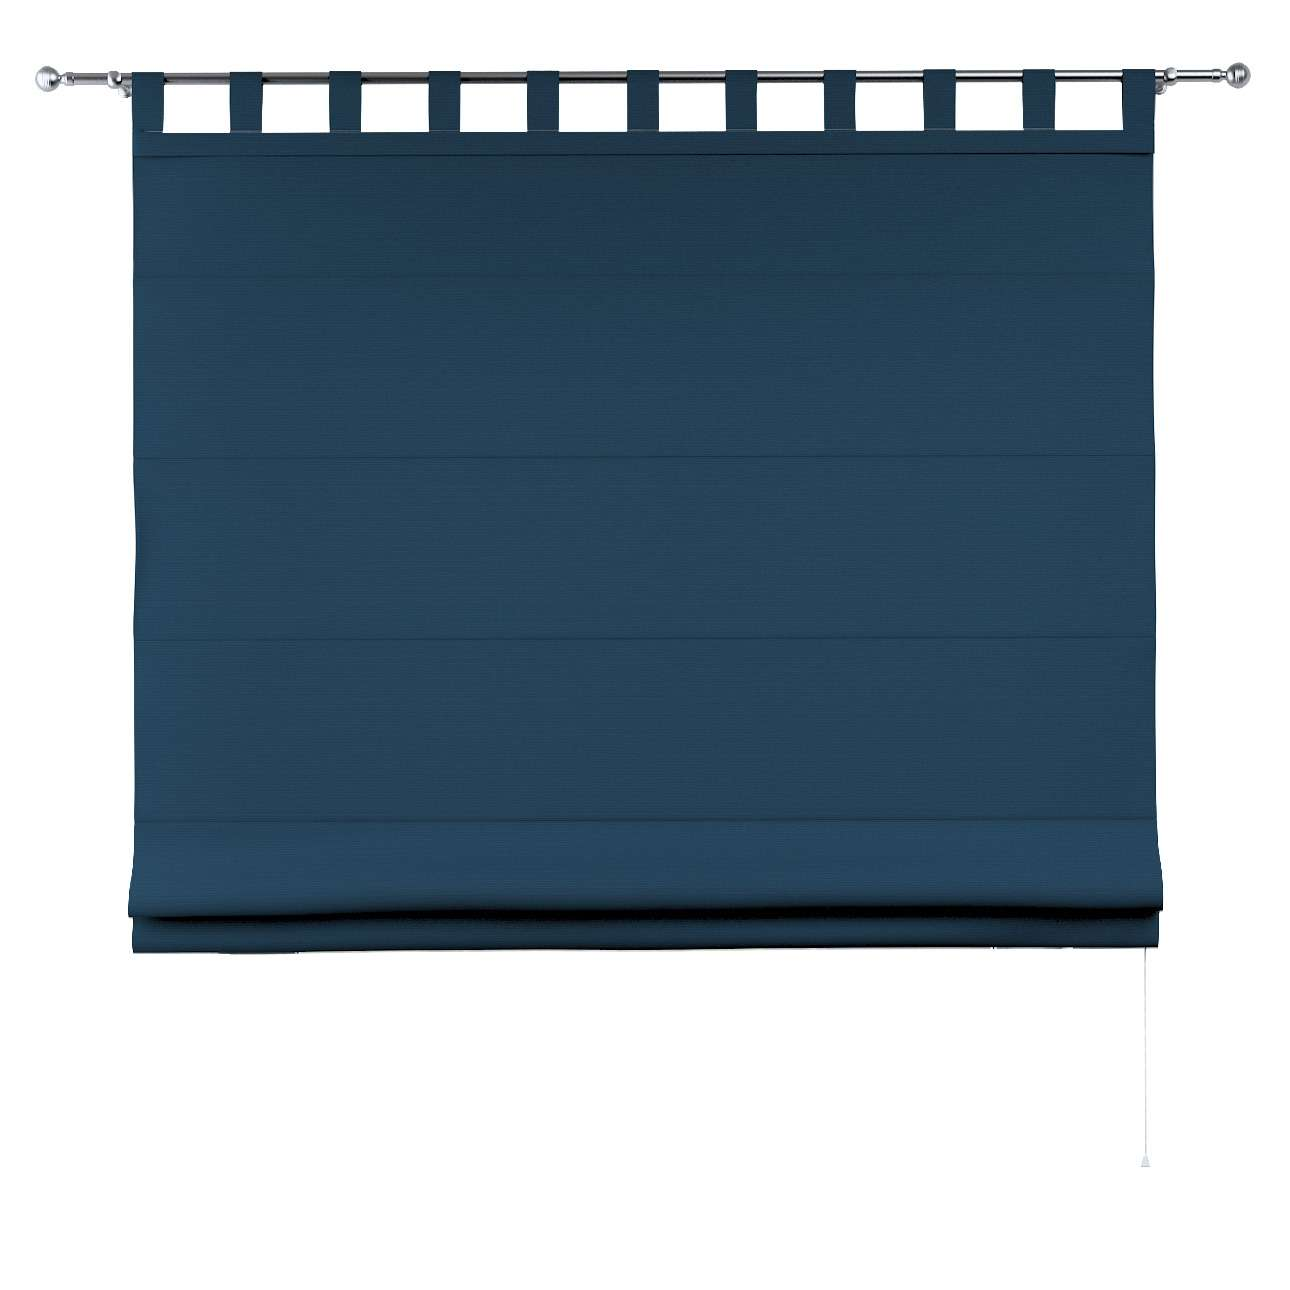 Oli tab top roman blind in collection Cotton Story, fabric: 702-30